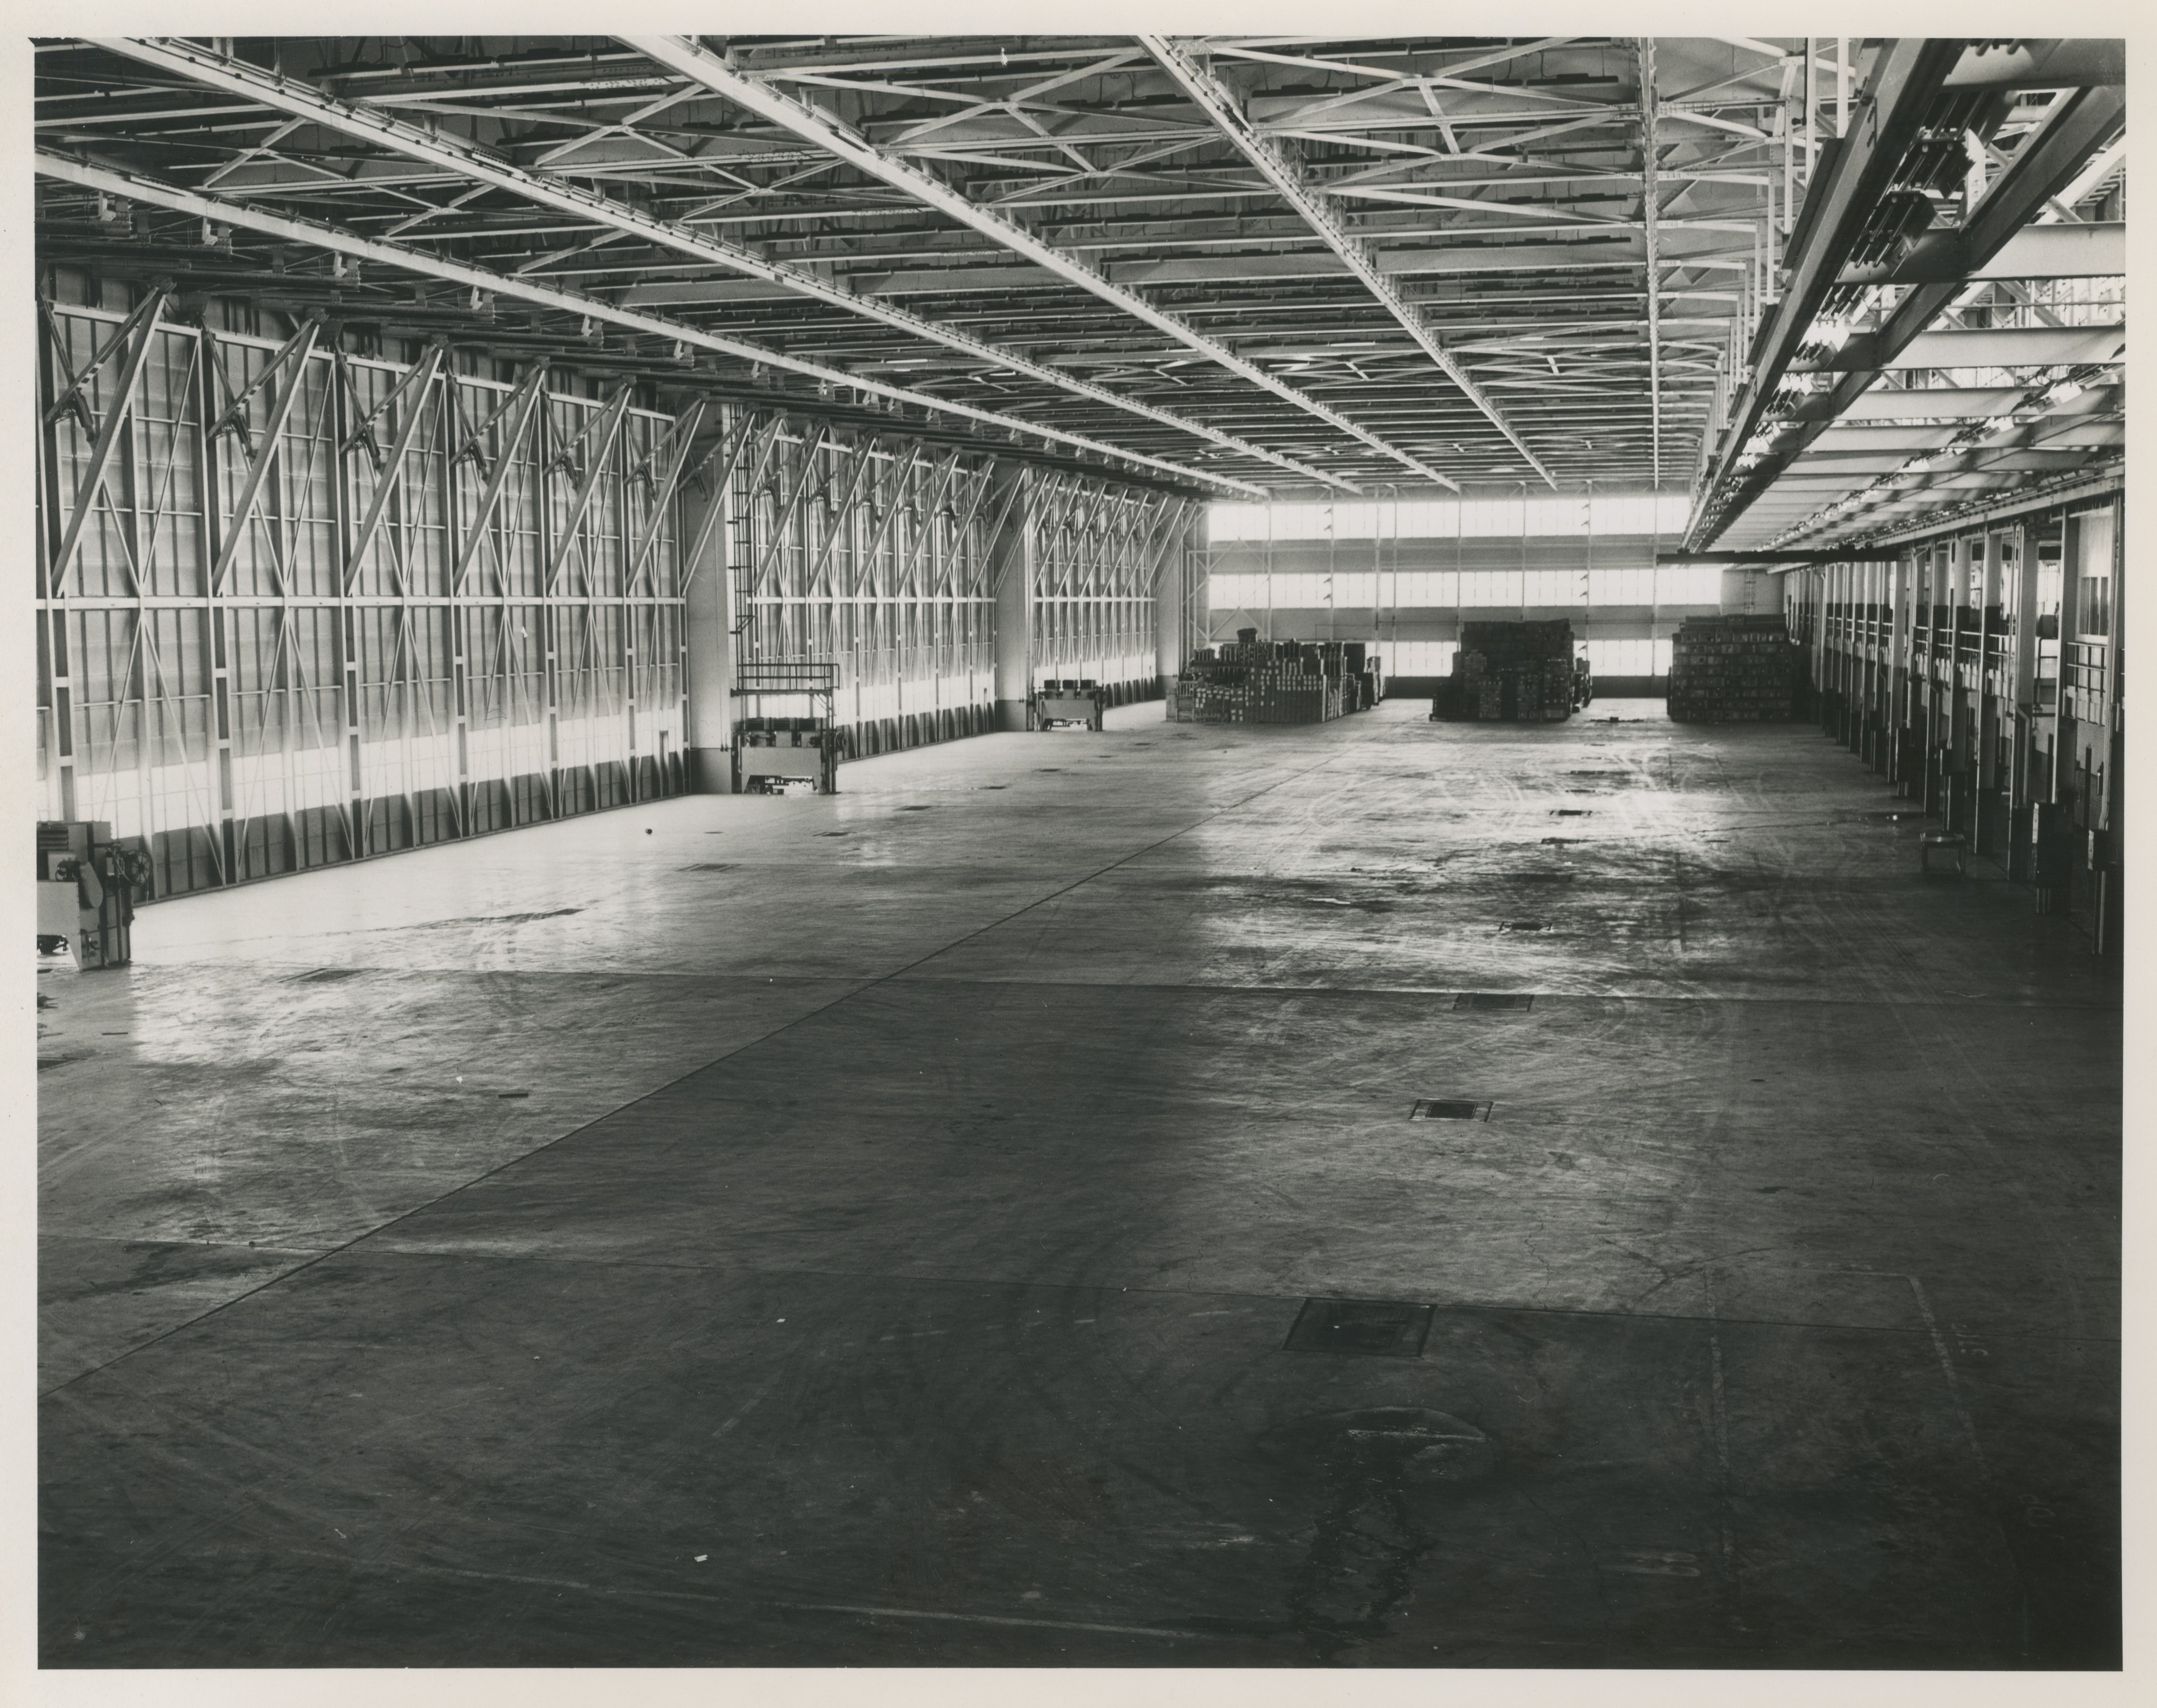 Kaiser-Frazer Willow Run Plant, March 1946 image